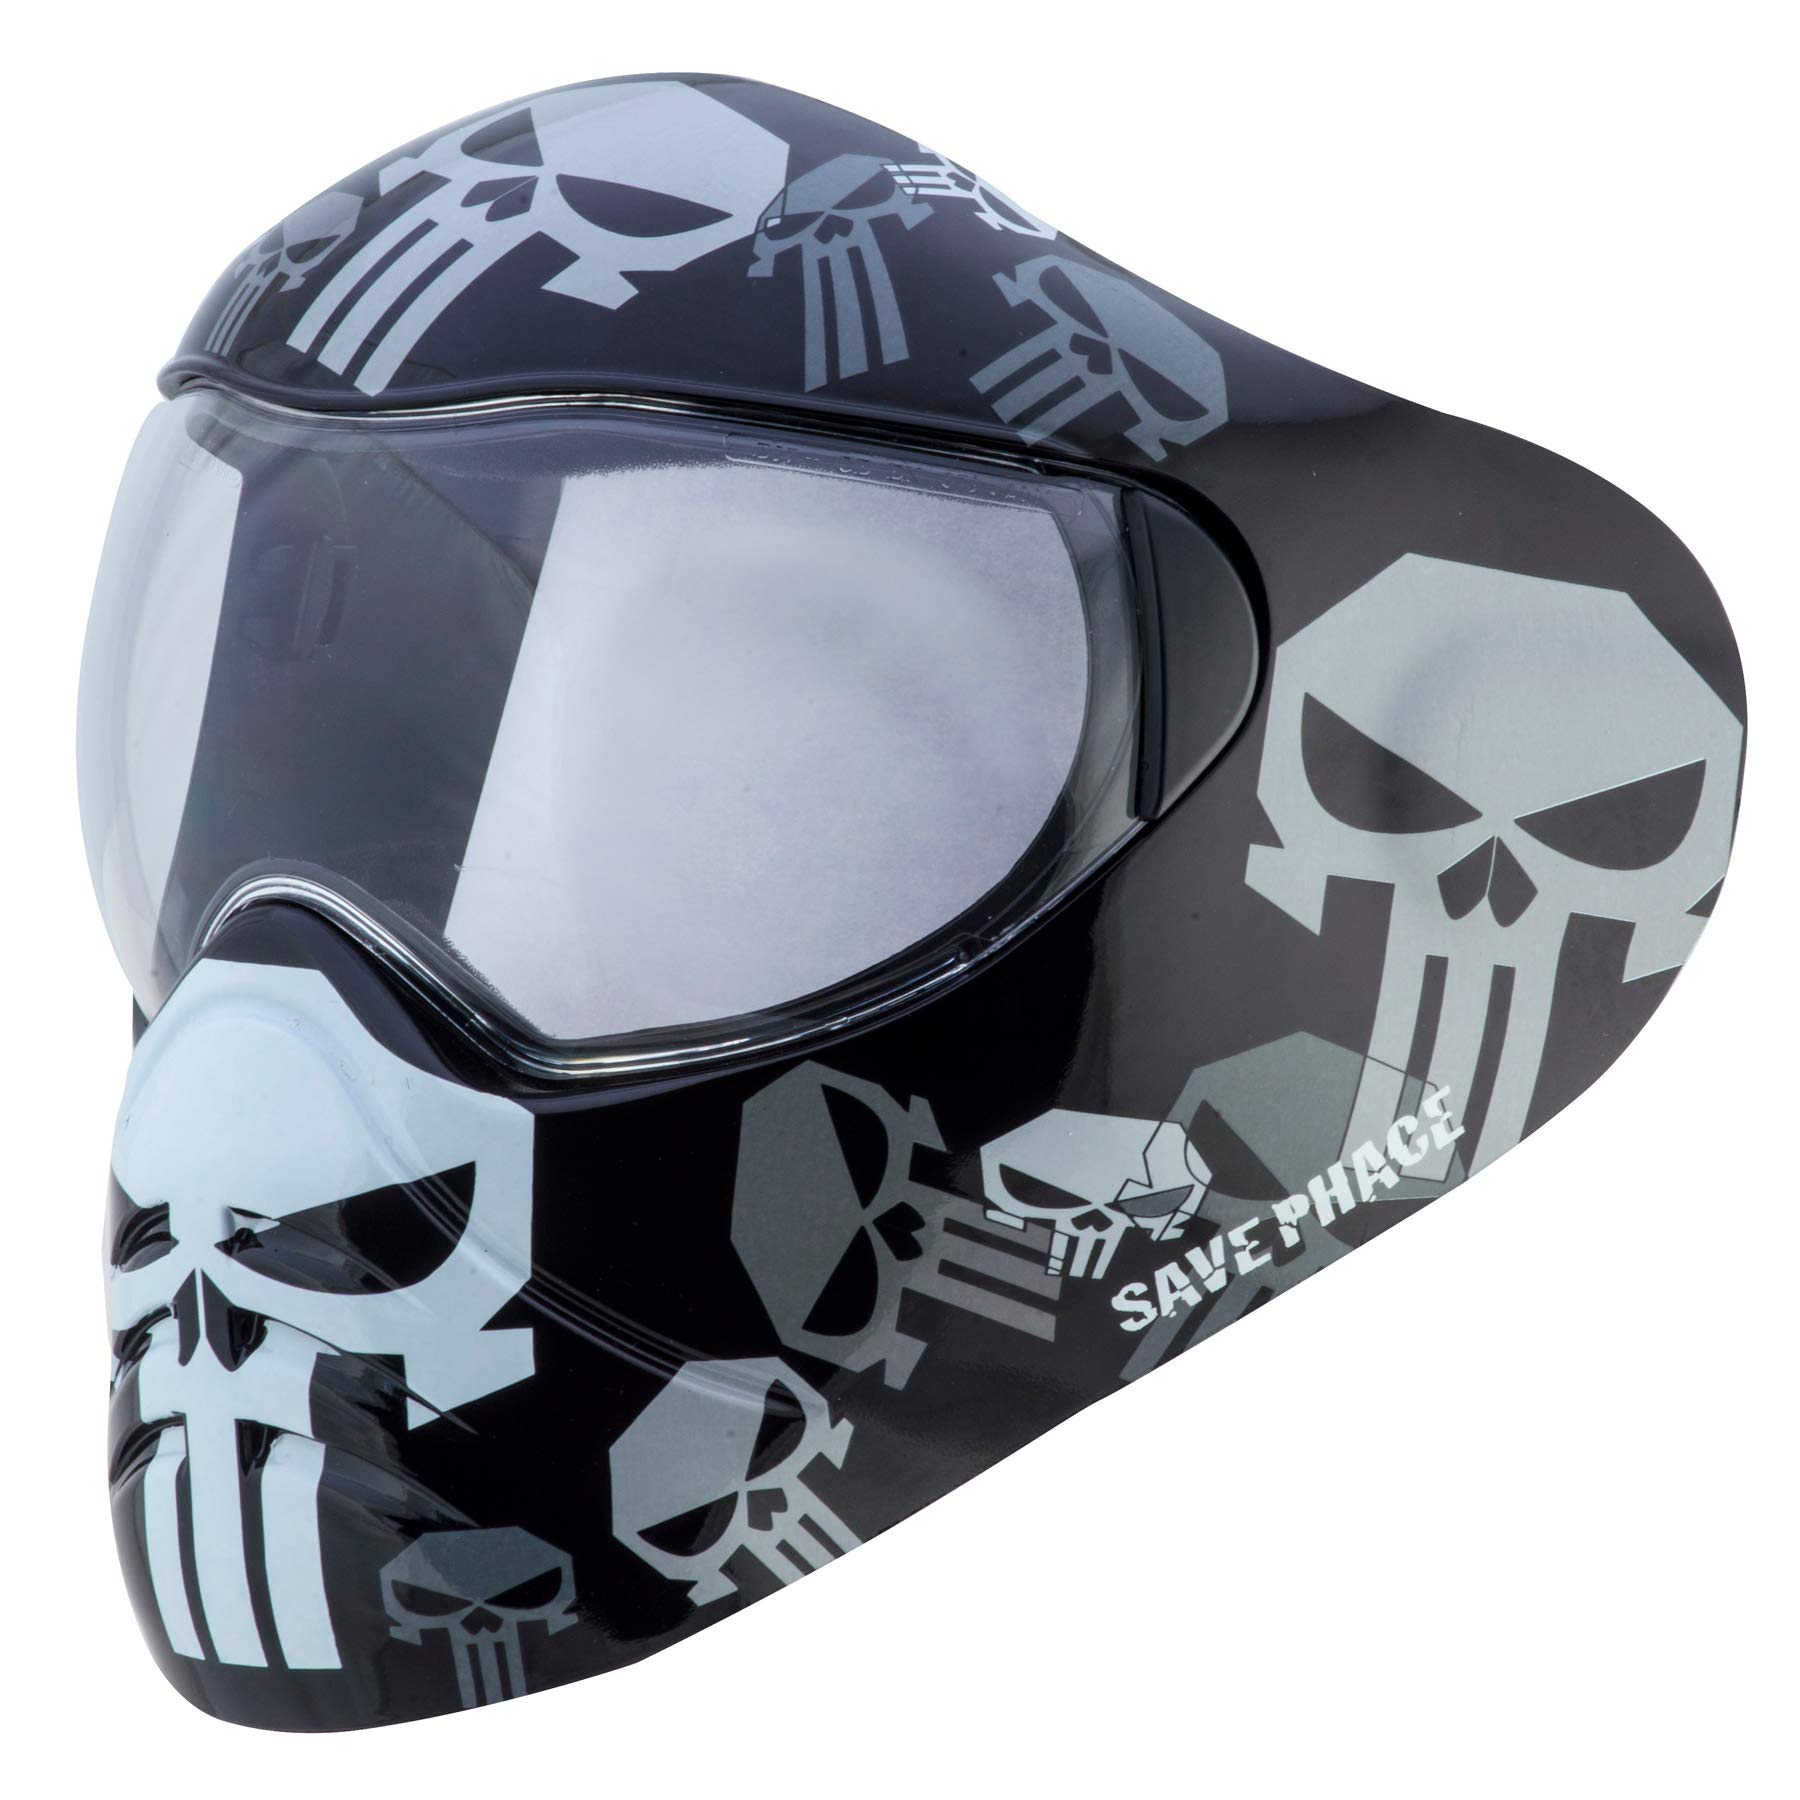 Save Phace 3012763 SUM Series Punisher Sport Utility Mask by Save Phace (Image #3)